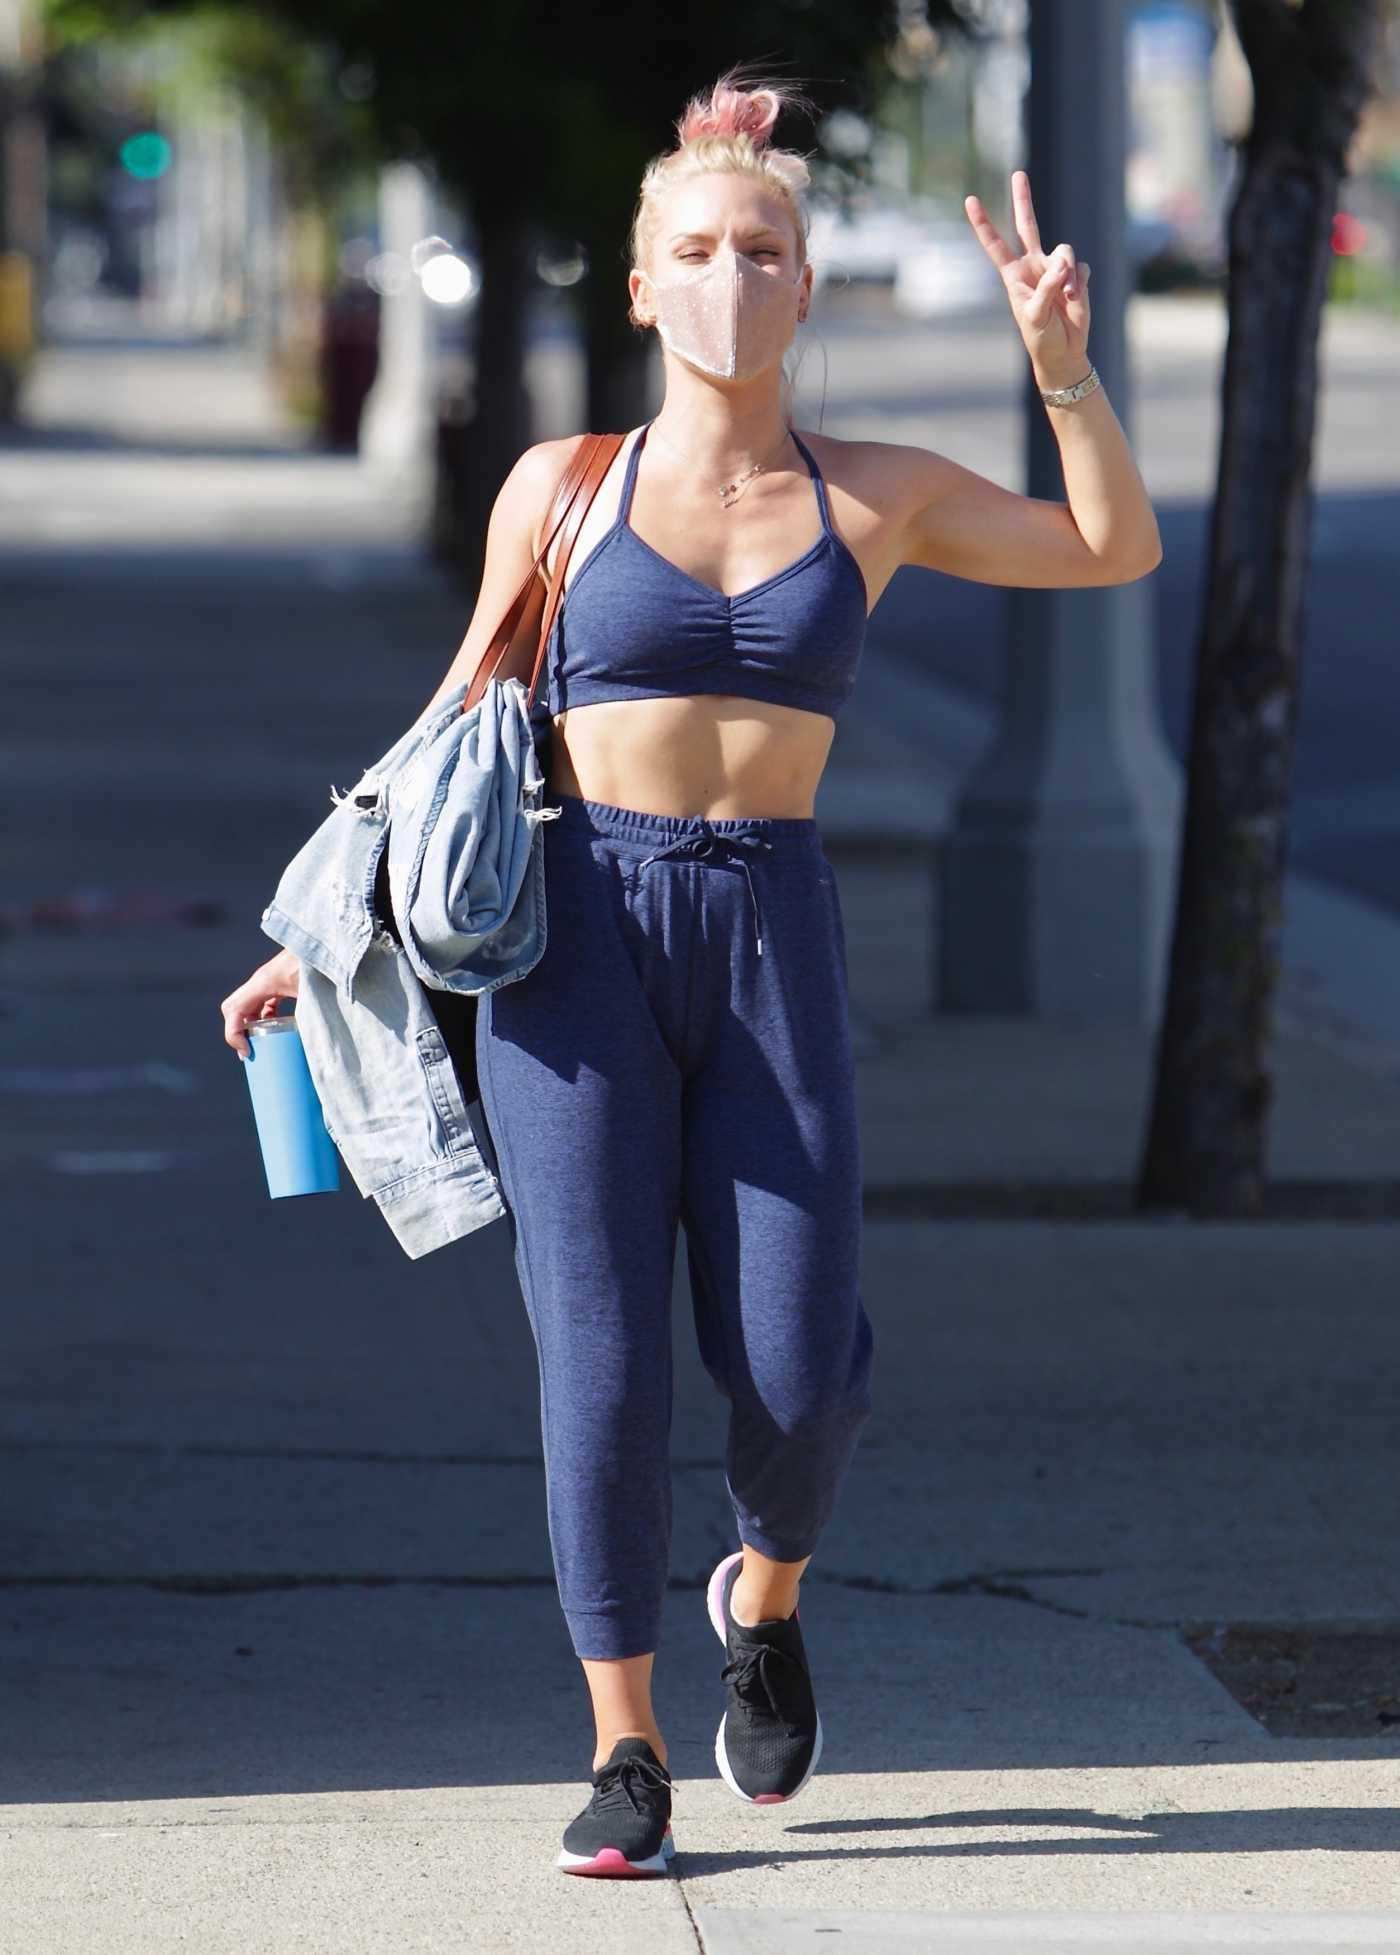 Sharna Burgess in a Blue Sports Bra Was Seen Out in Los Angeles 09/07/2020